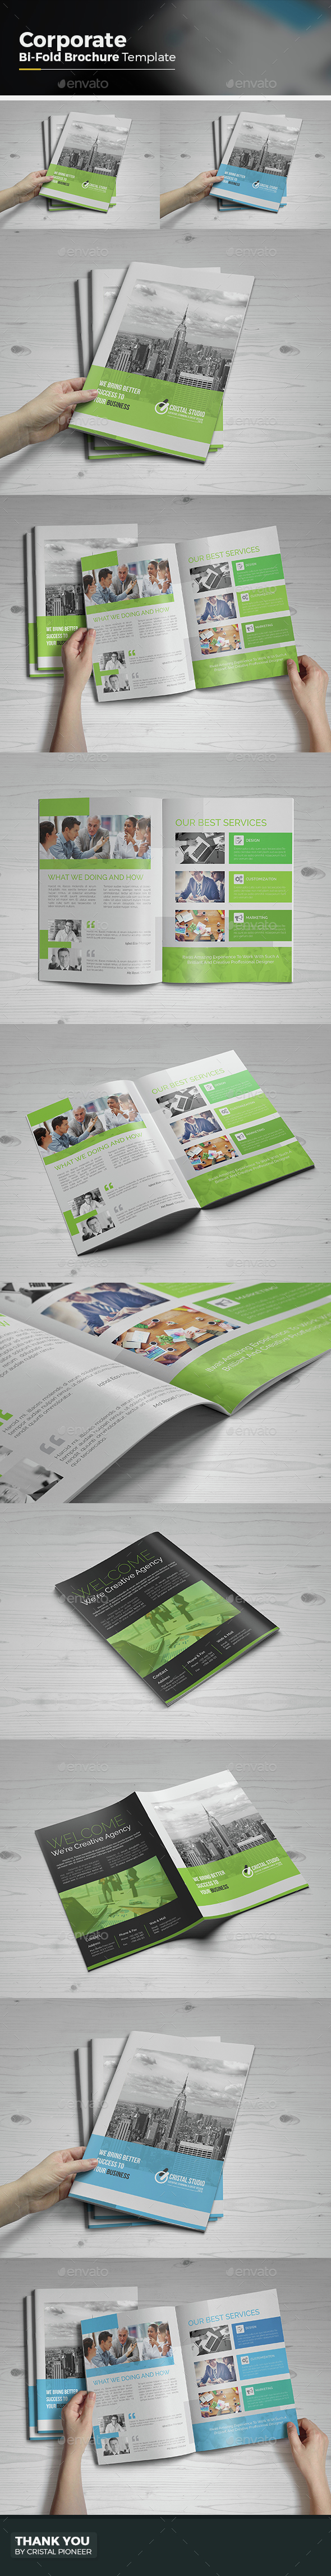 Bi Fold Brochure Template - Corporate Brochures